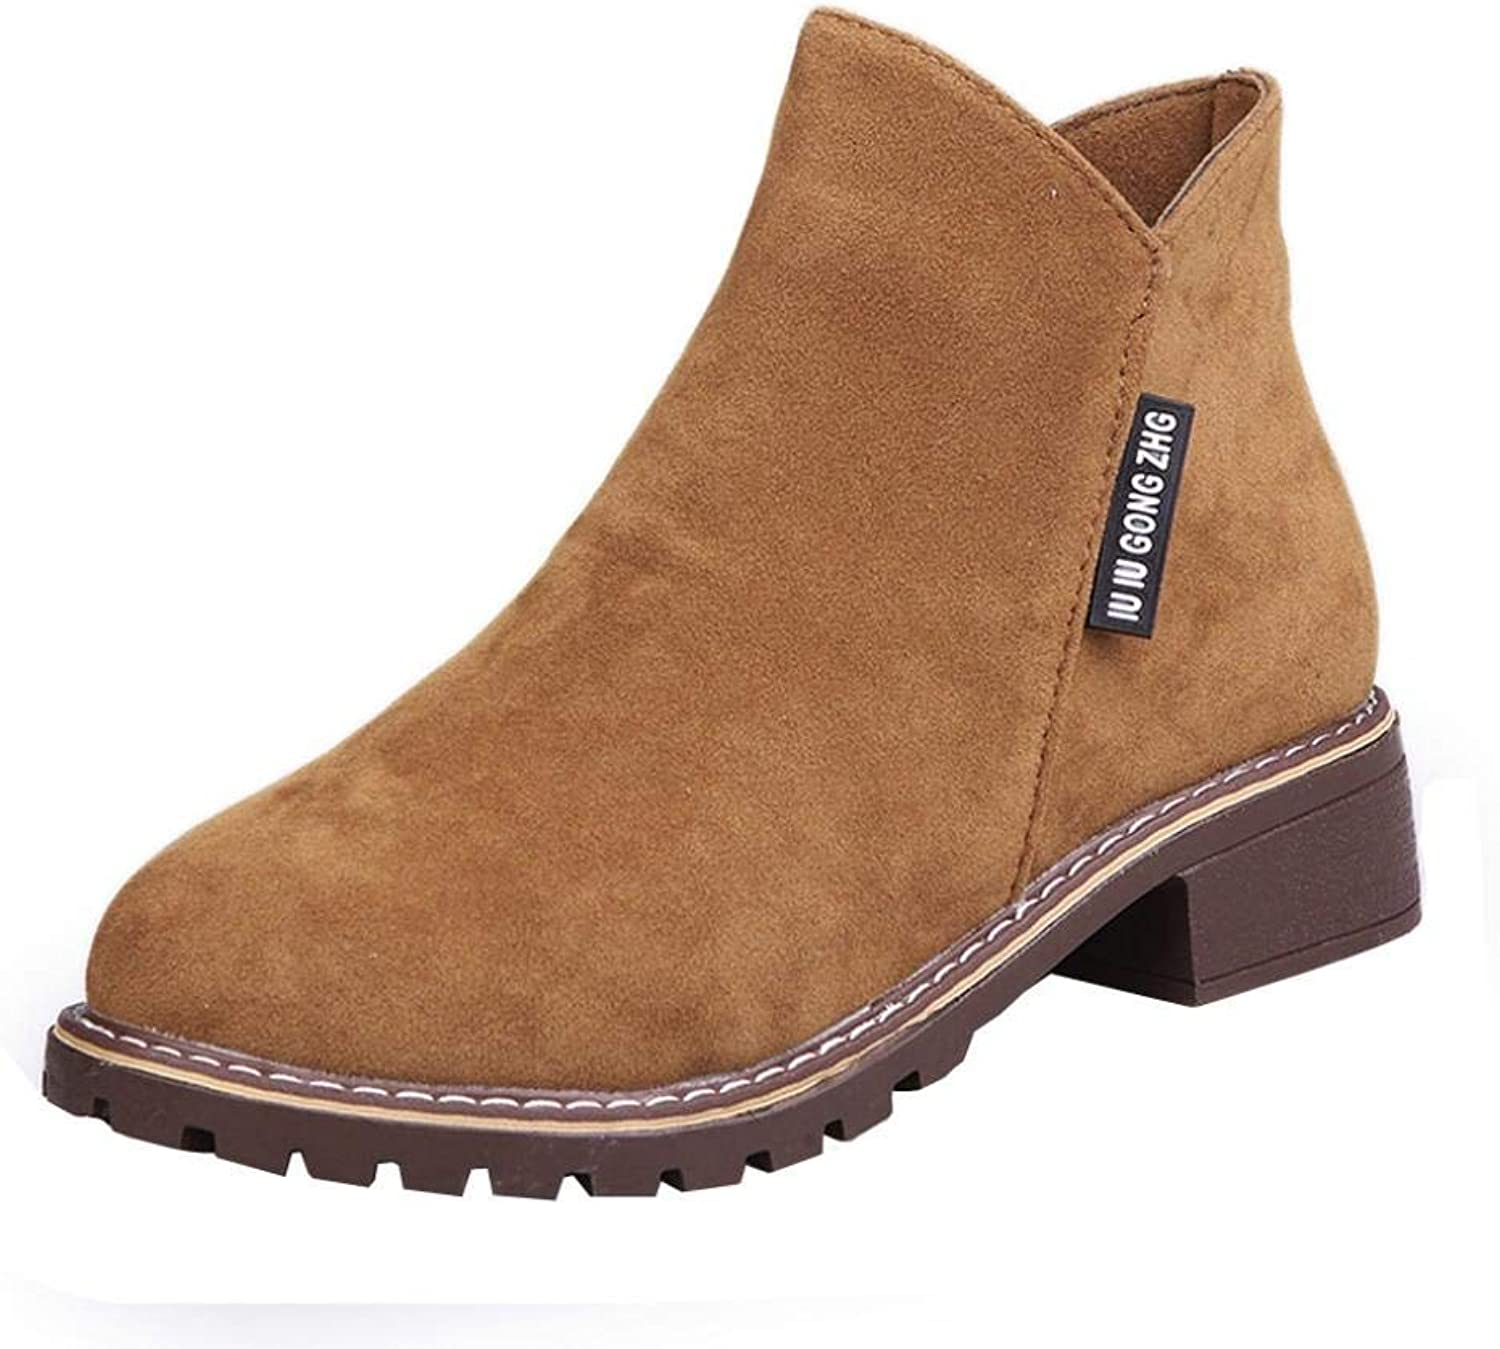 So8ooa Lady Boots Fashion Women Low Knot Trimming Round Toe Knock Leather Boots Casual Martin shoes Elegant Cosy Wild Tight Super Quality for Womens